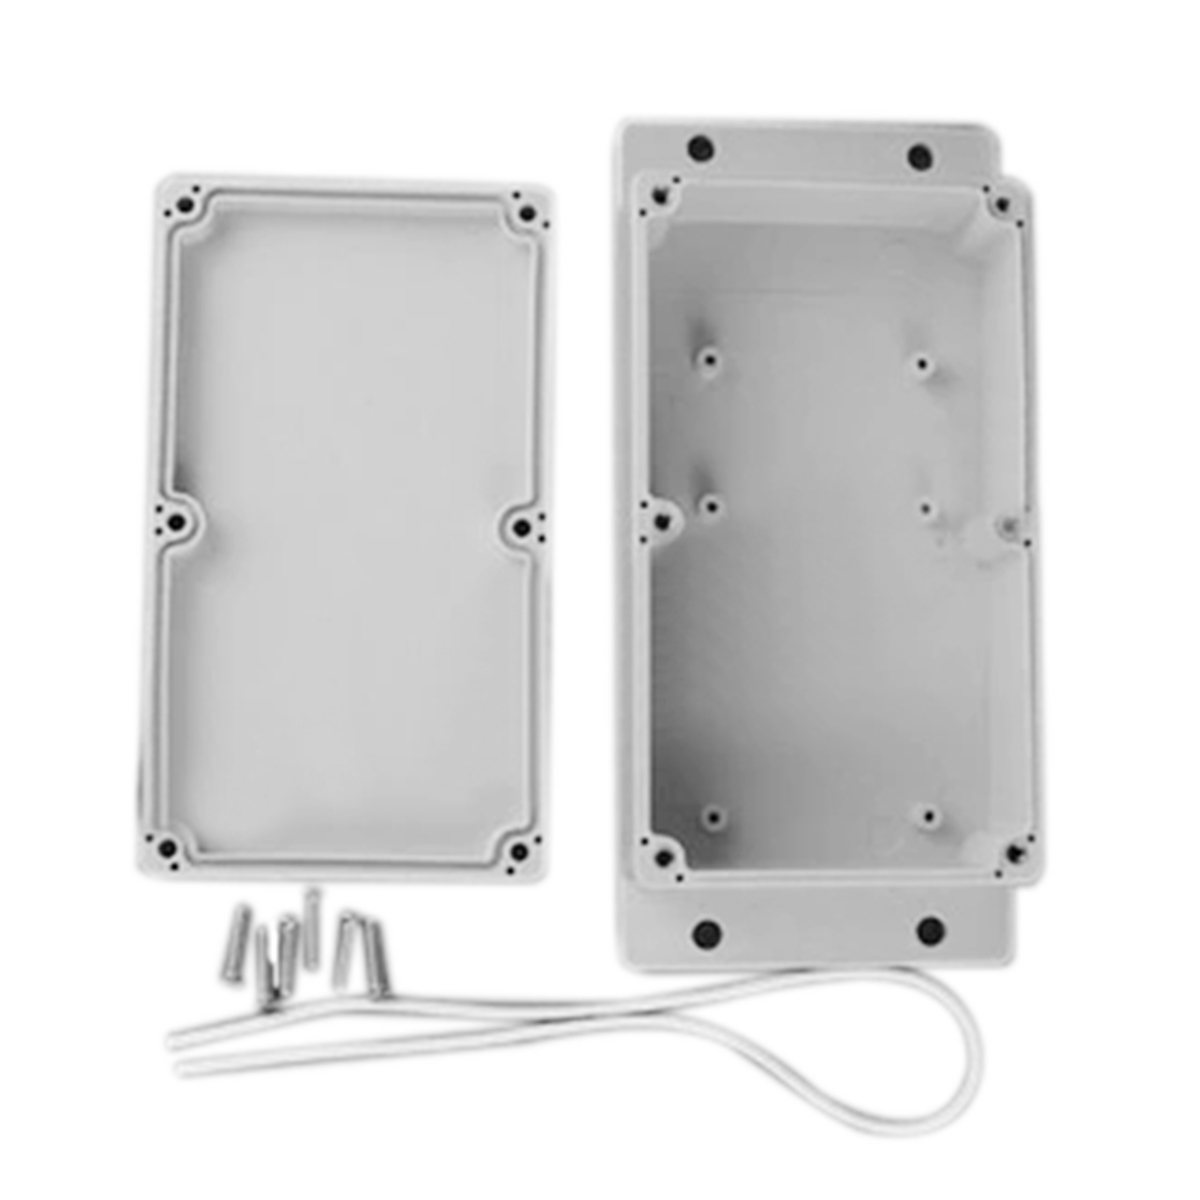 White Waterproof Plastic Enclosure Box Electric Power Junction Case 158mmx90mmx46mm with 6pcs Screws 1 piece free shipping plastic enclosure for wall mount amplifier case waterproof plastic junction box 110 65 28mm